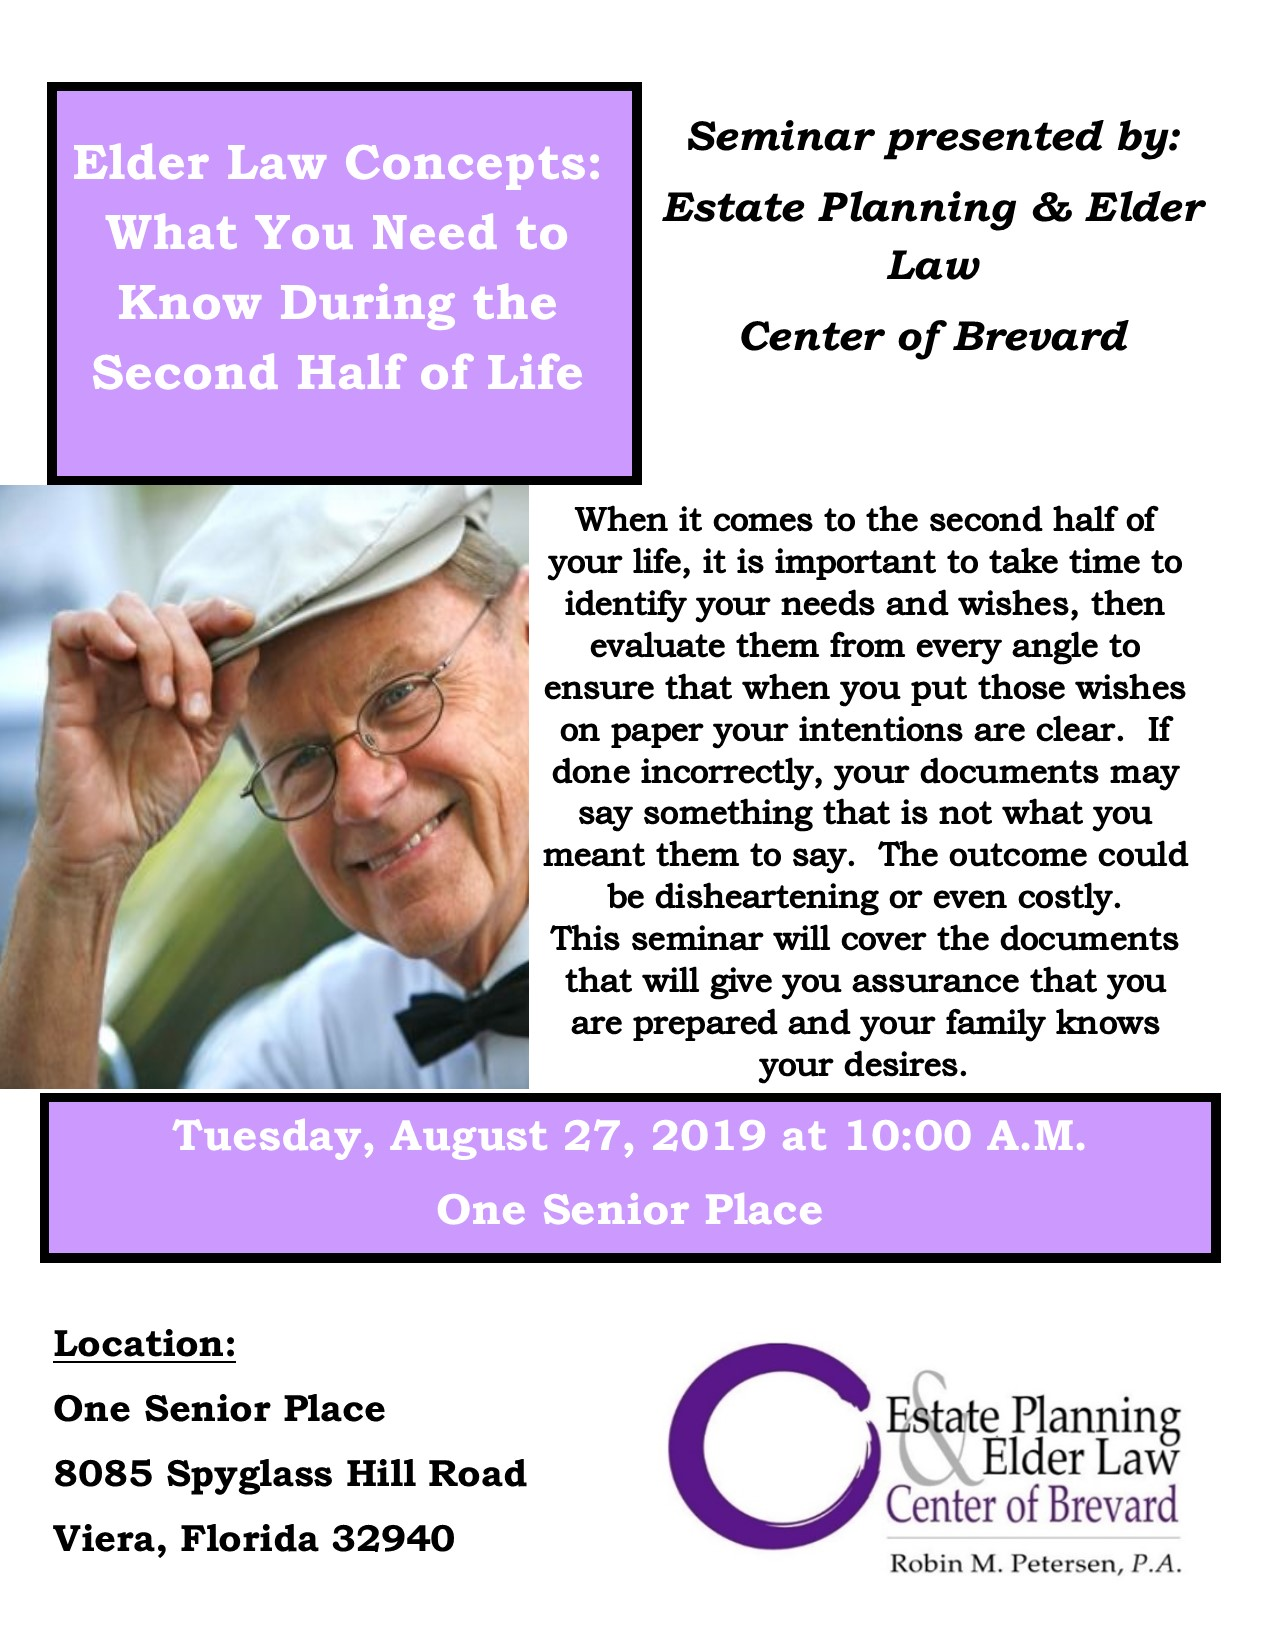 Elder Law Concepts: What You Need to Know During the Second Half of Life presented by Estate Planning Elder Law Center of Brevard